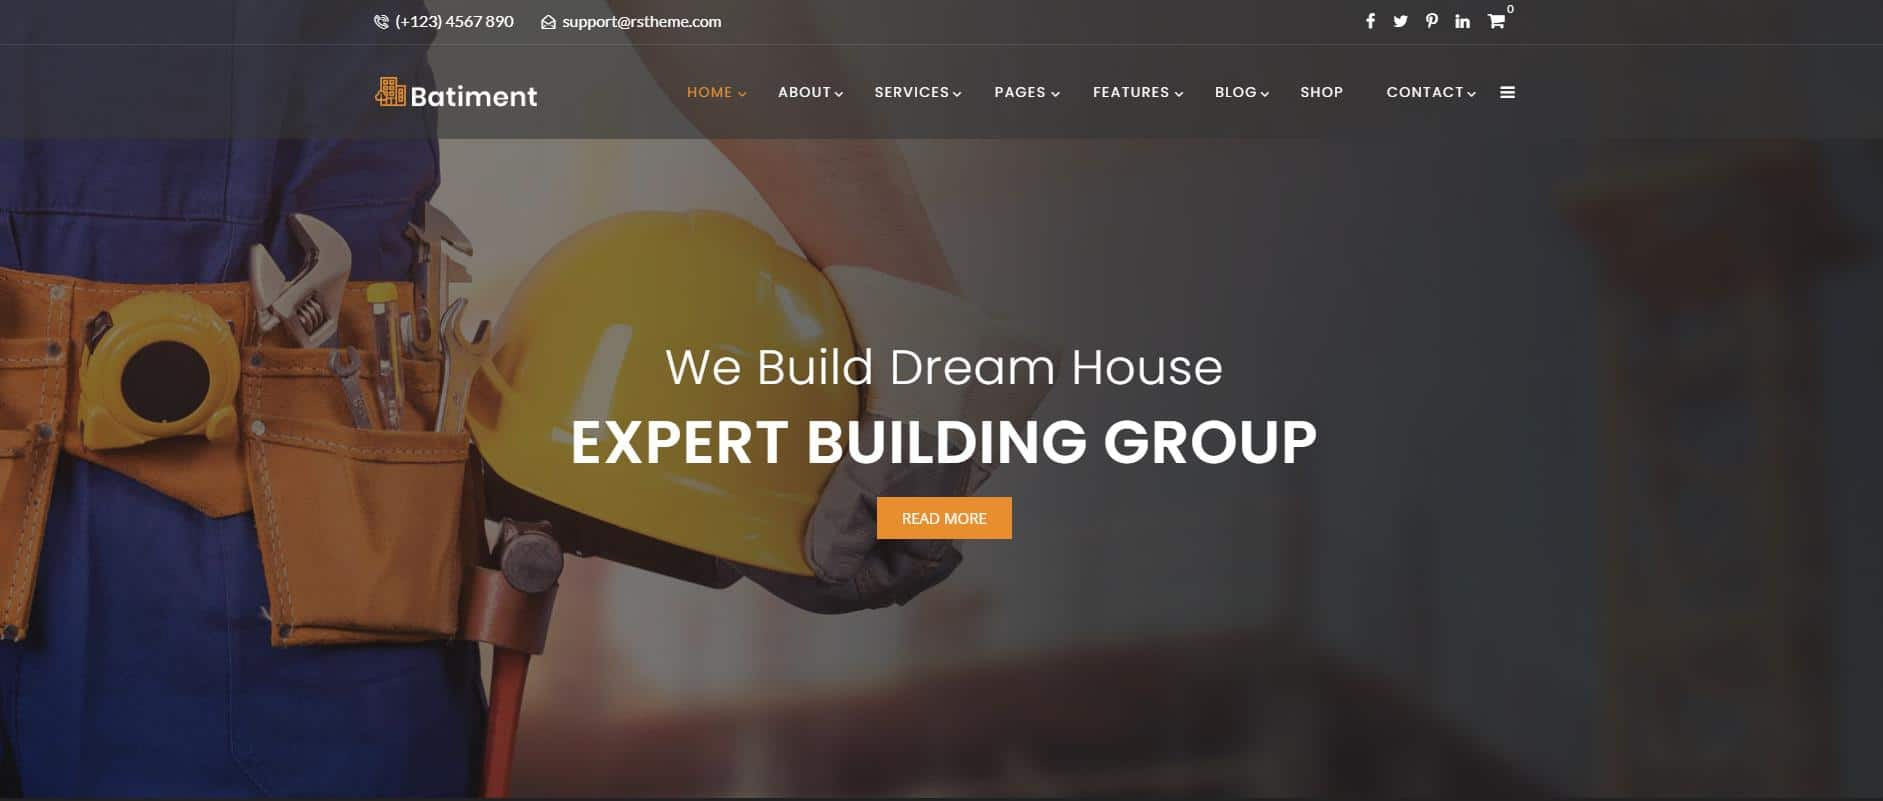 Construction & Building Website Design